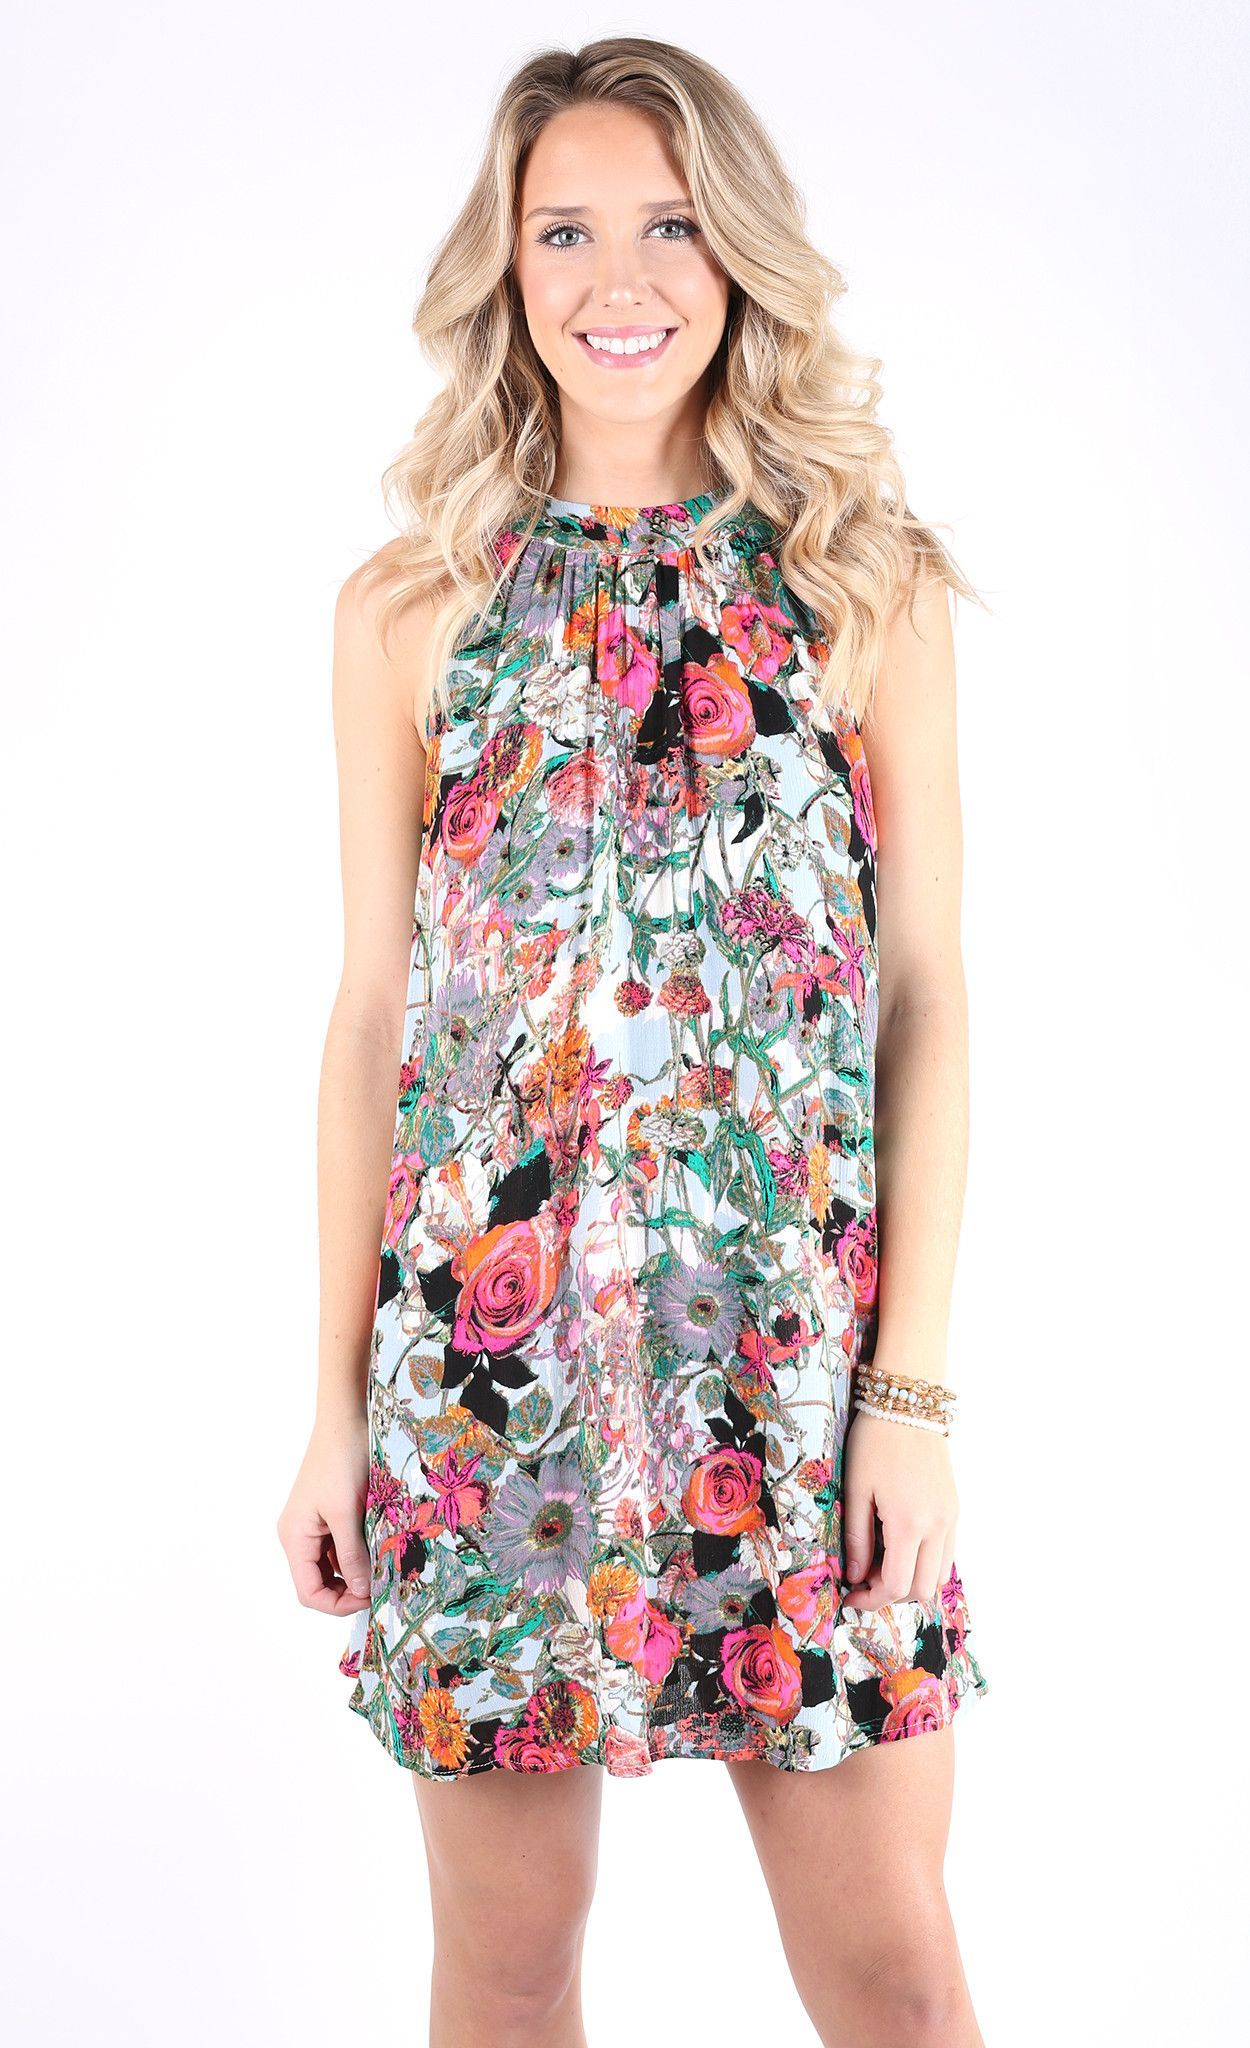 568508d917f Entro - Dress - Spring Away Dress - Pink - Cheeky Peach Boutique - 1 ...